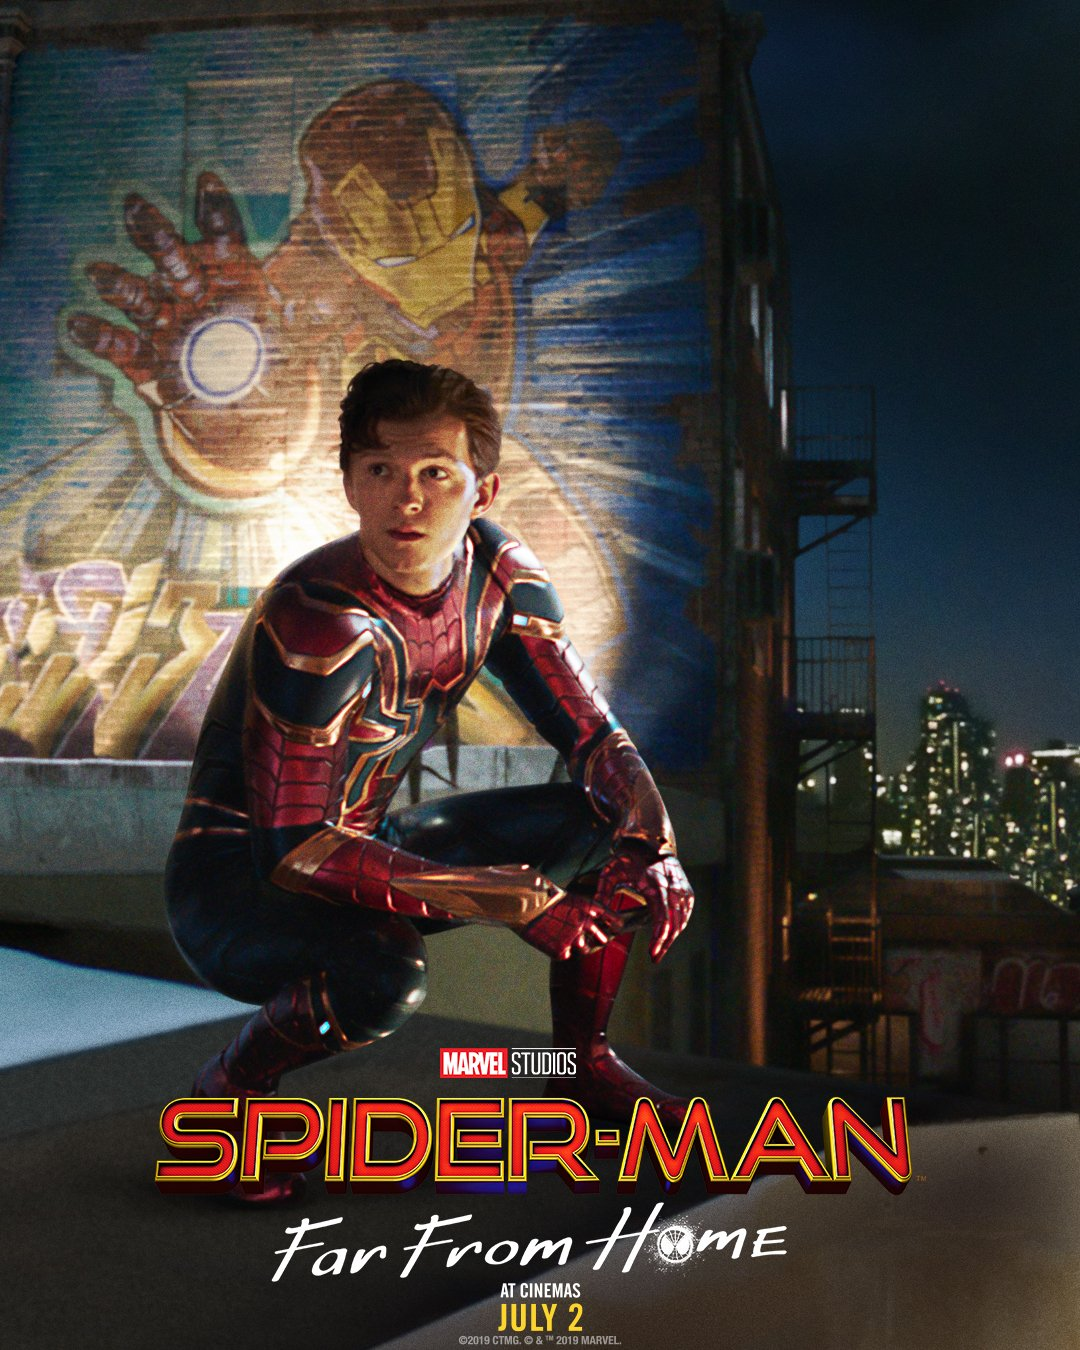 new-poster-for-spider-man-far-from-home-pays-homage-to-iron-mans-legacy1